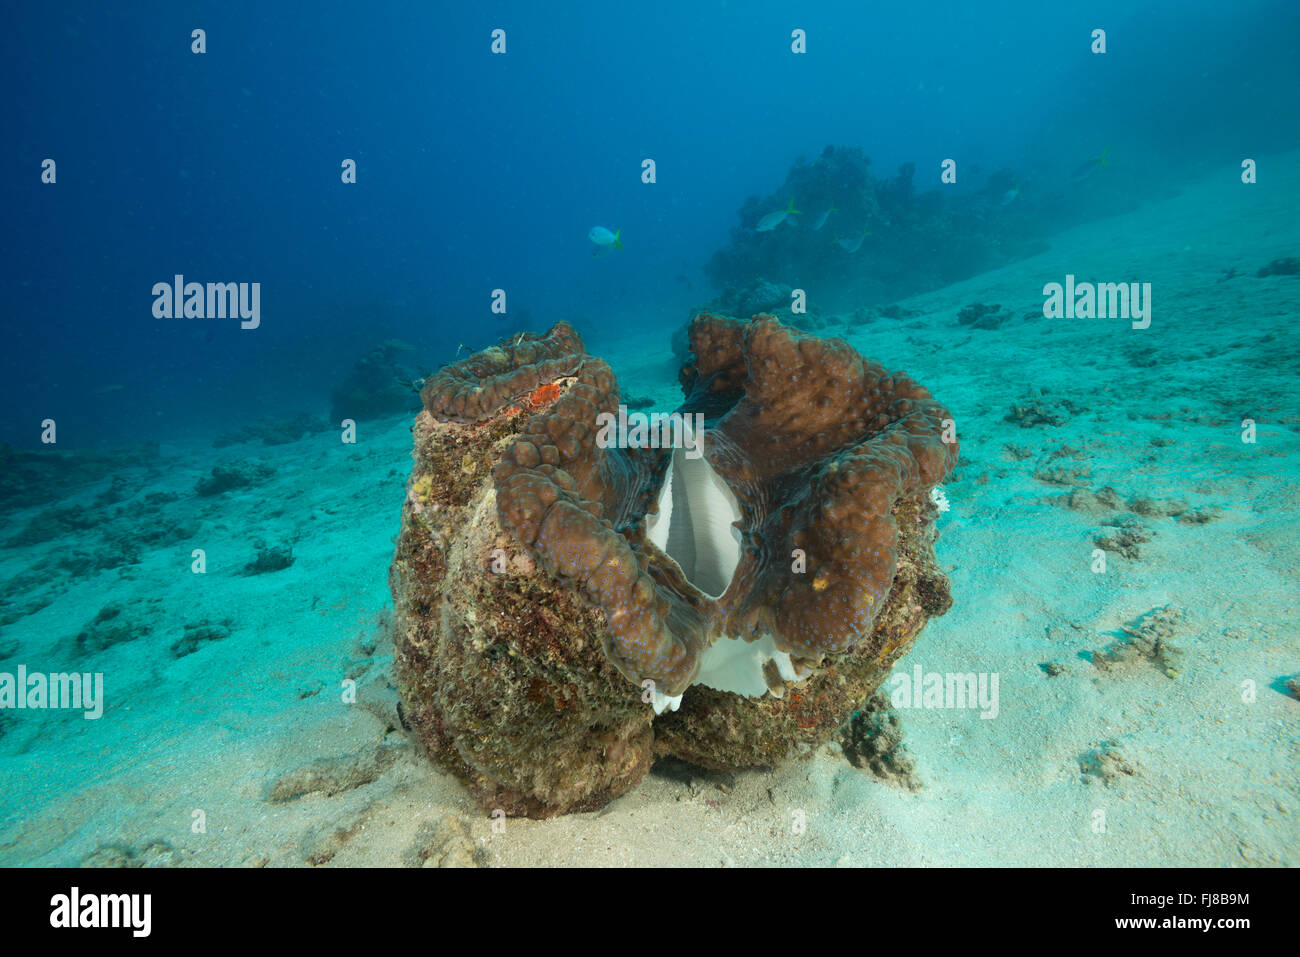 Giant clam (Tridacna gigas) in the reef.  There were very many big healthy giant clams in the surveryed reefs. Stock Photo